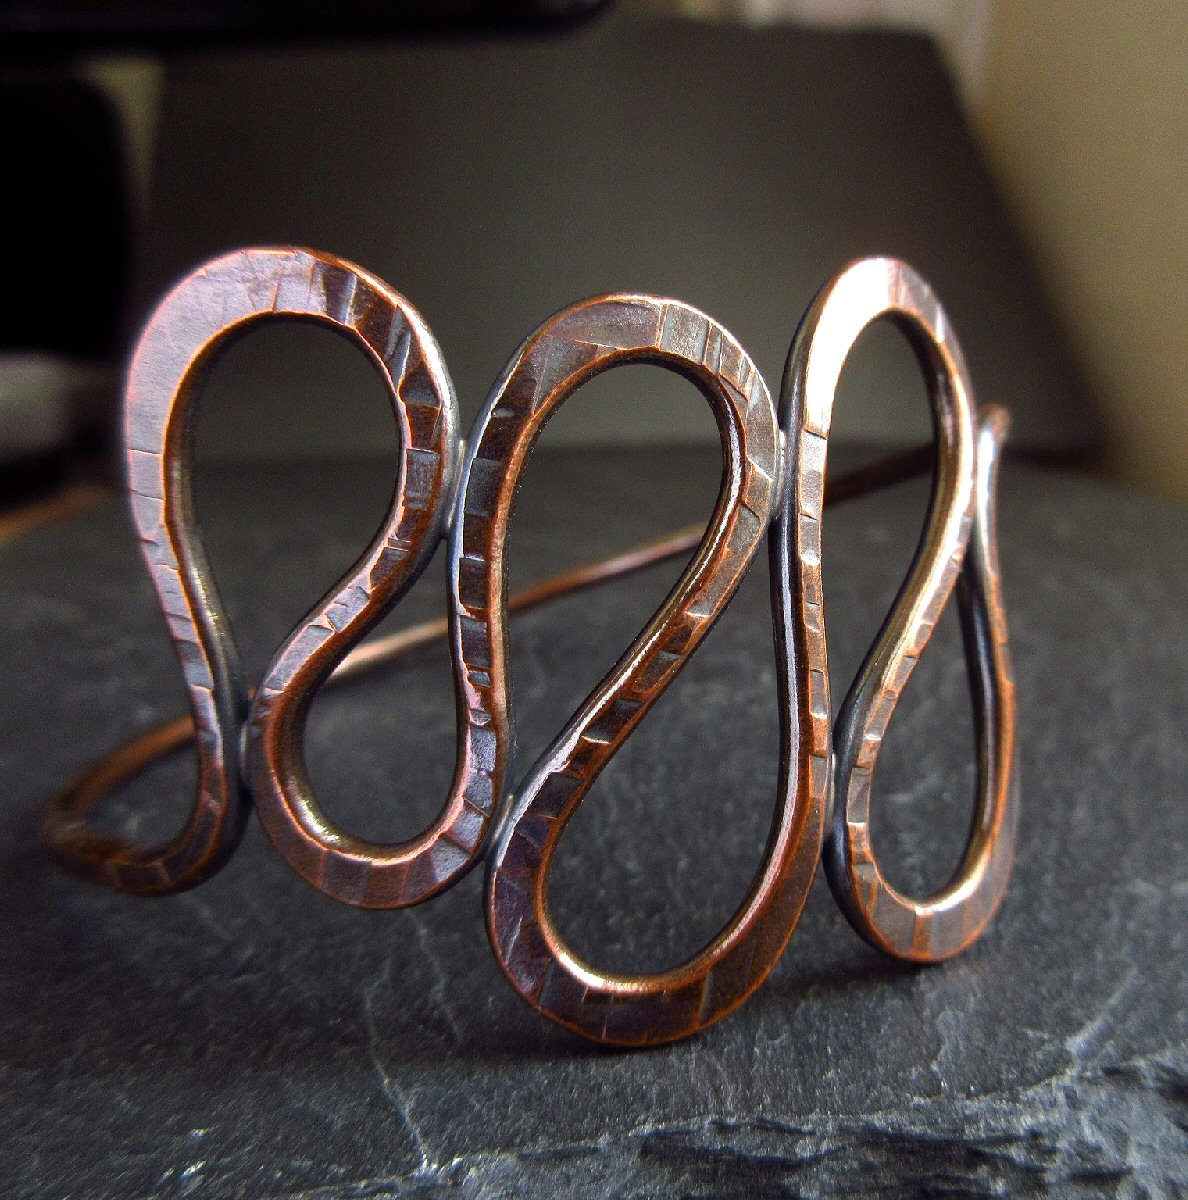 A New Copper Loop Bangle And How I Made It